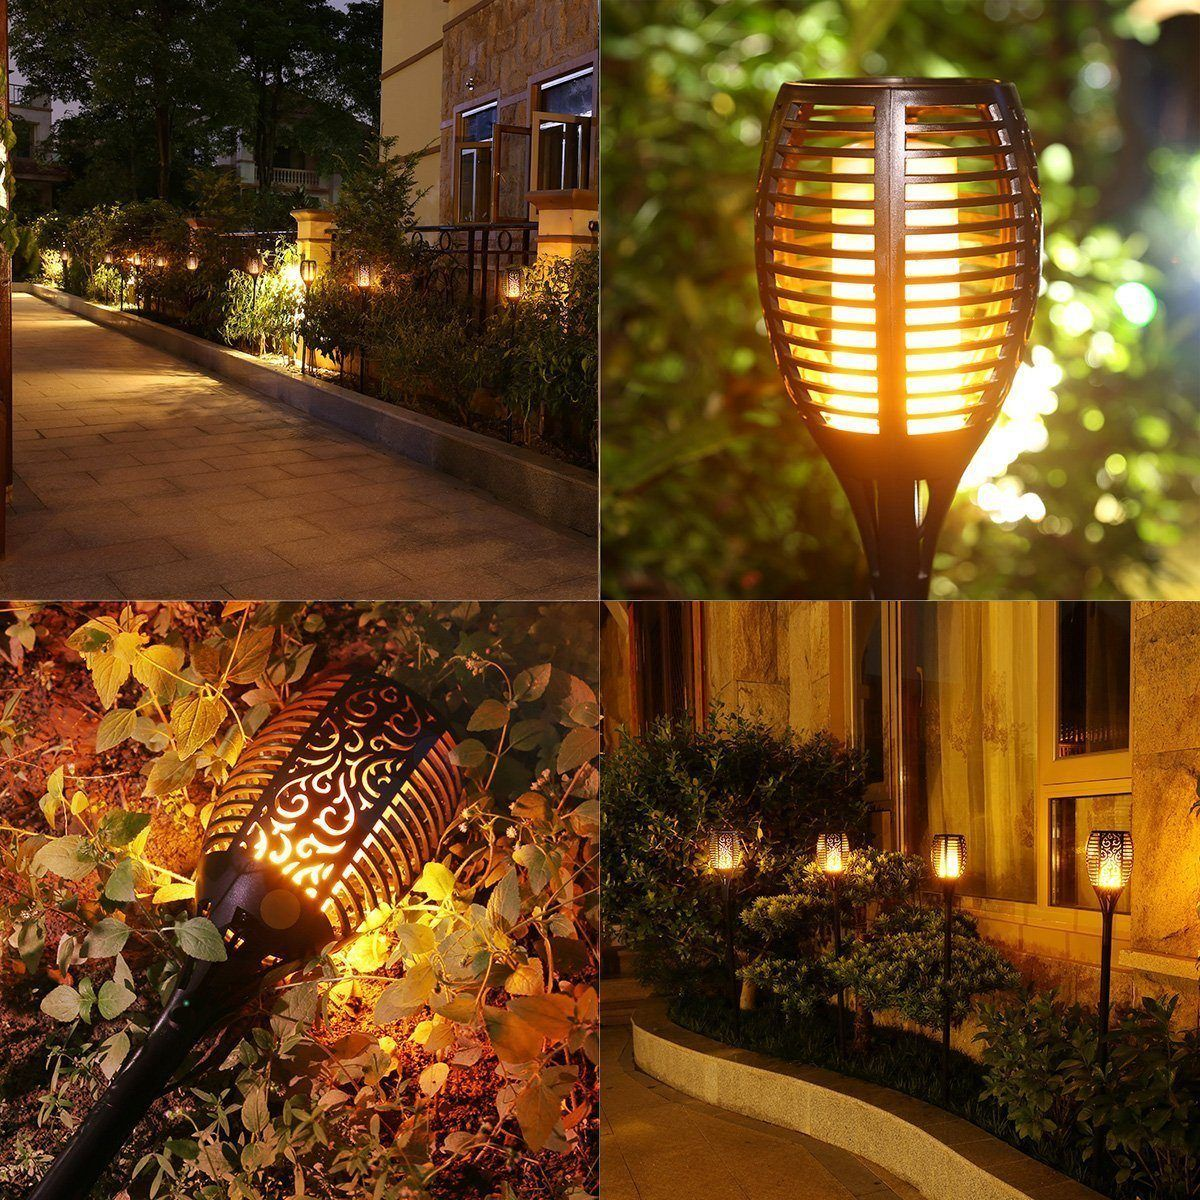 Pin by Shauna Williams on out door ideas | Solar lights